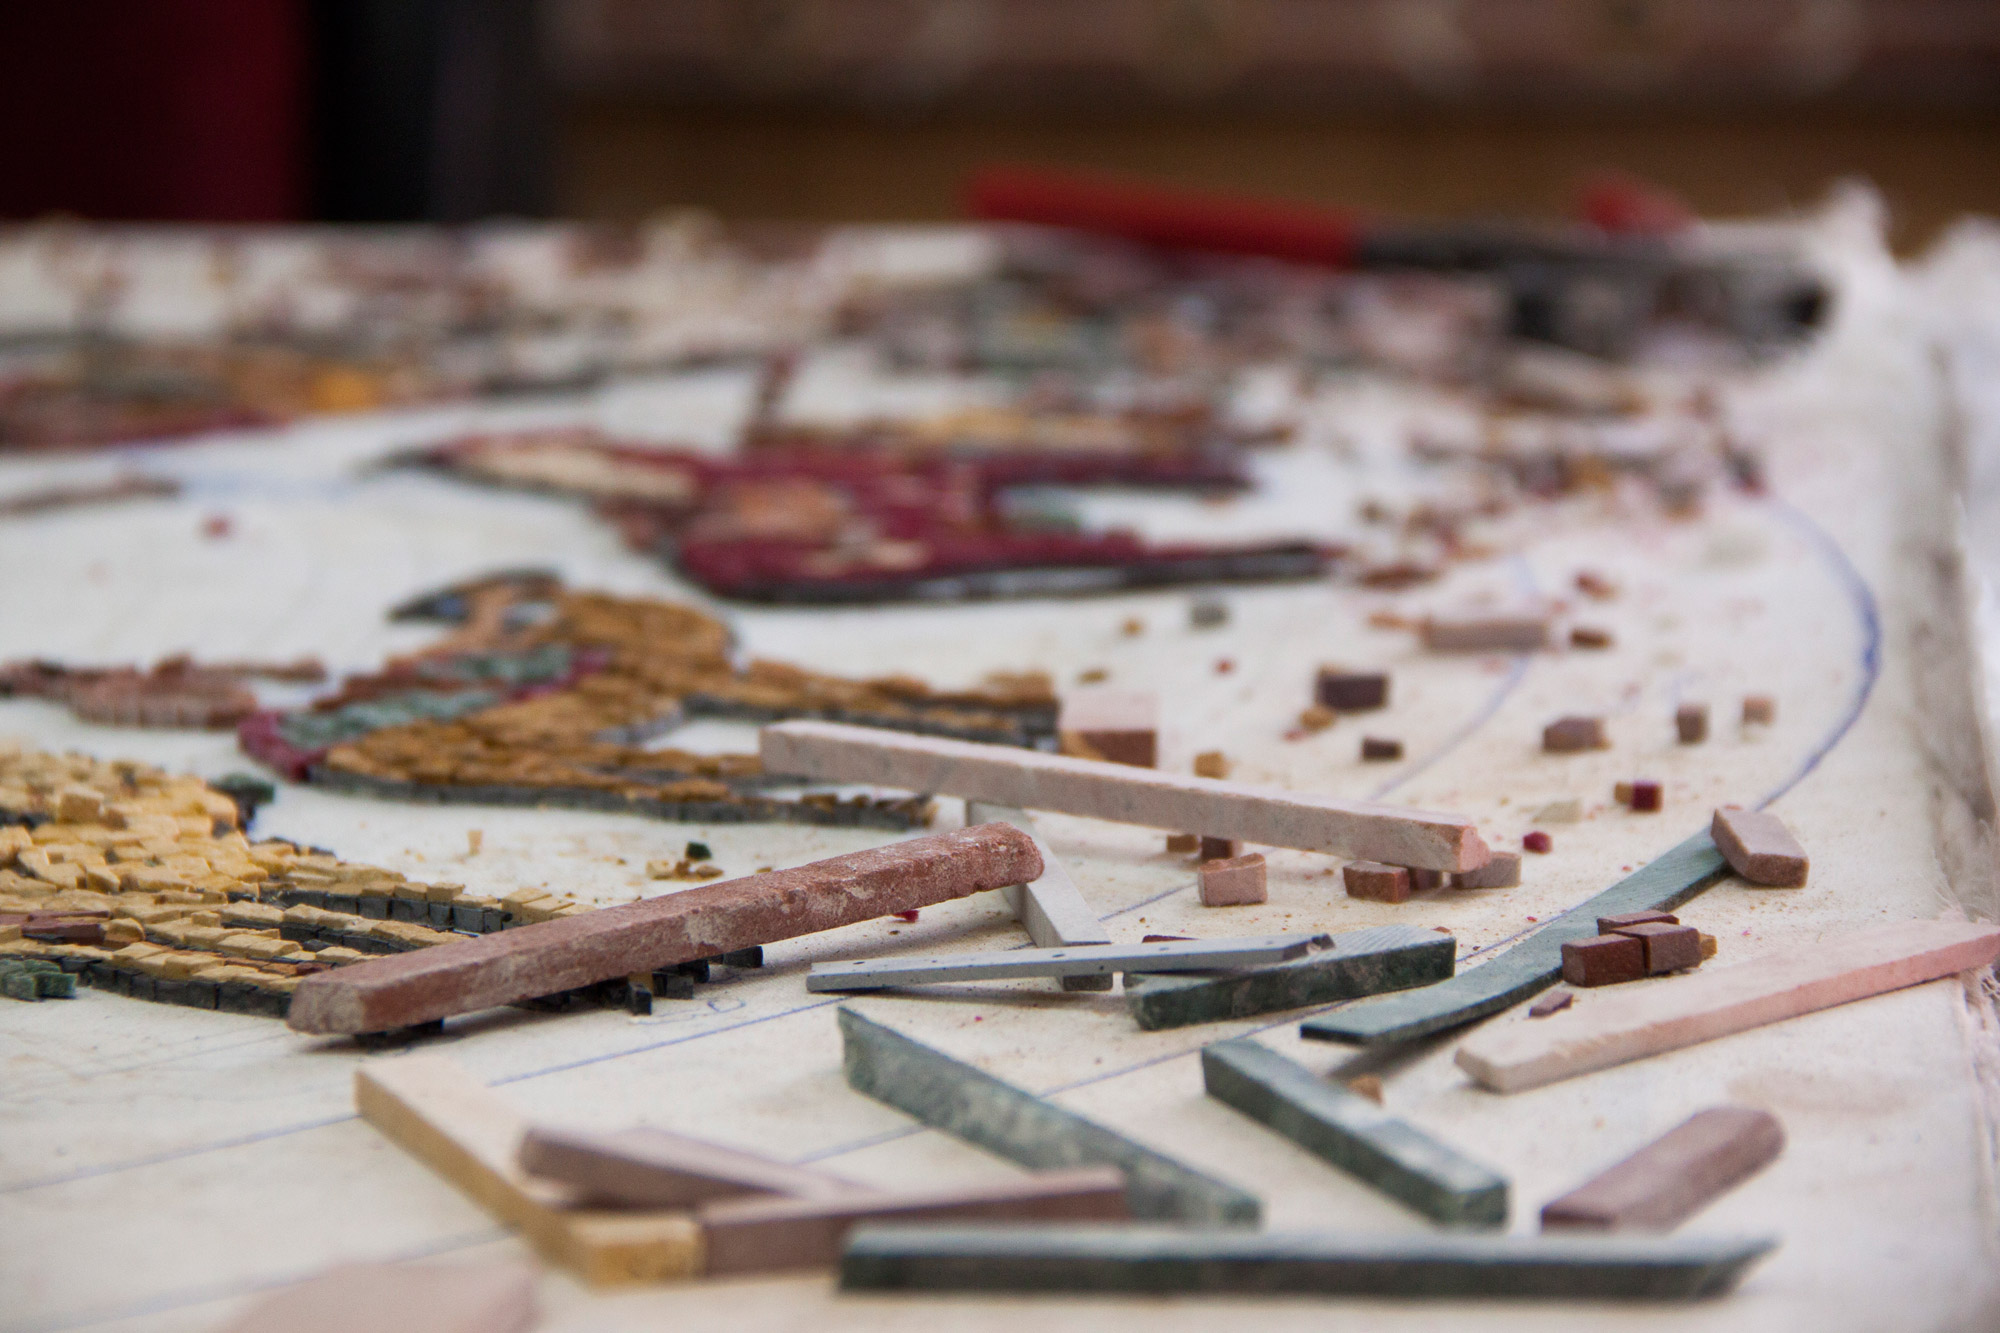 The craft of mosaic making has a noble and distinguished heritage in Jordan. Mosaics are made from tiny squares of naturally coloured rock called tesserae.